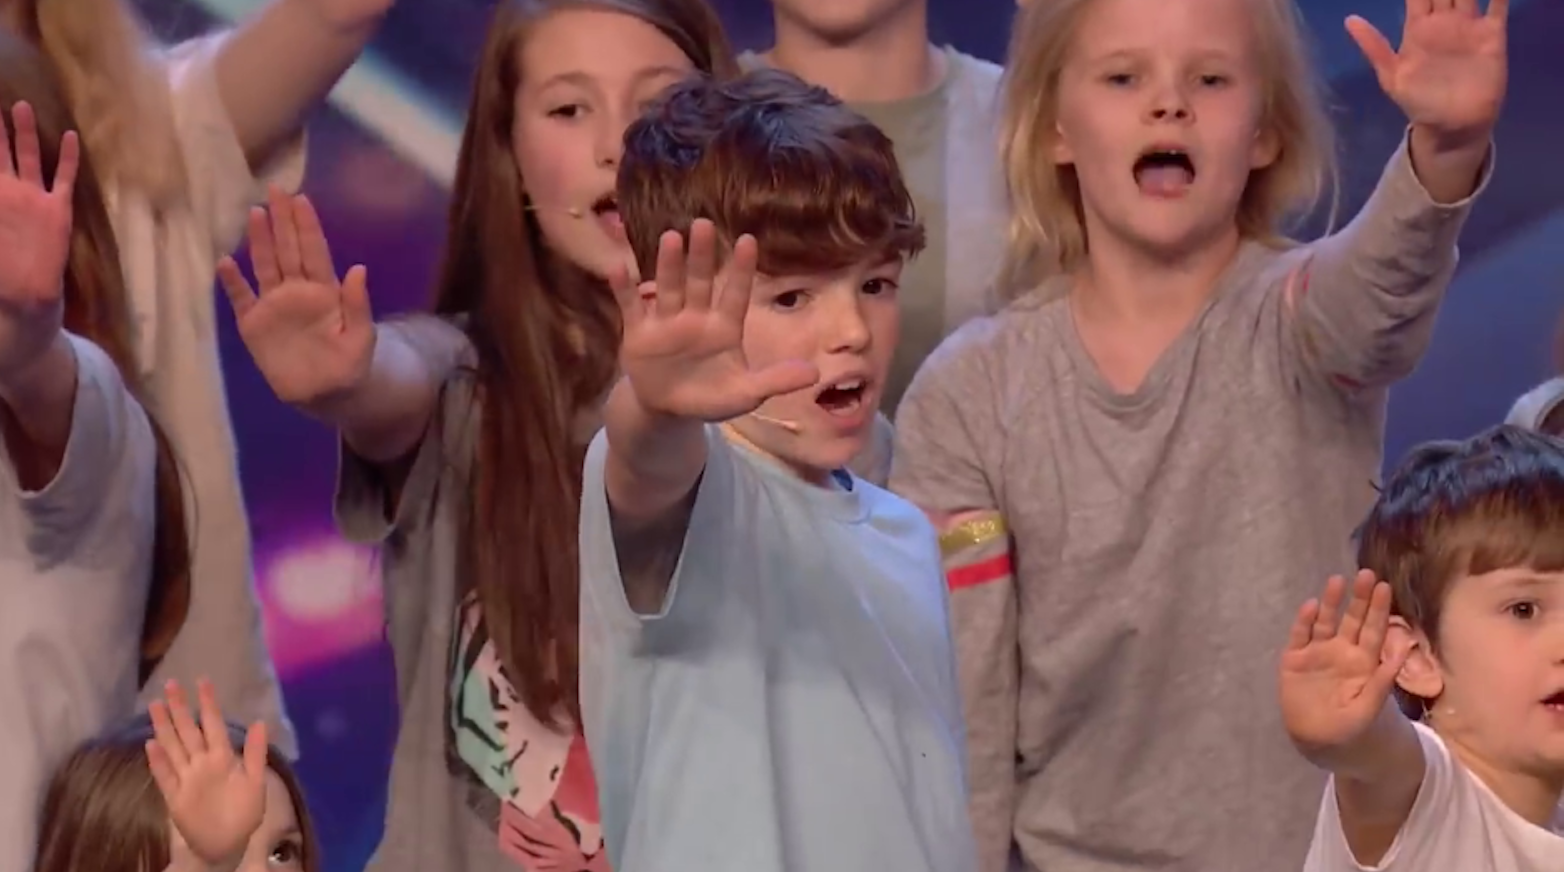 BGT choir SOS From The Kids release new single for heartbreaking reason that'll move you to tears